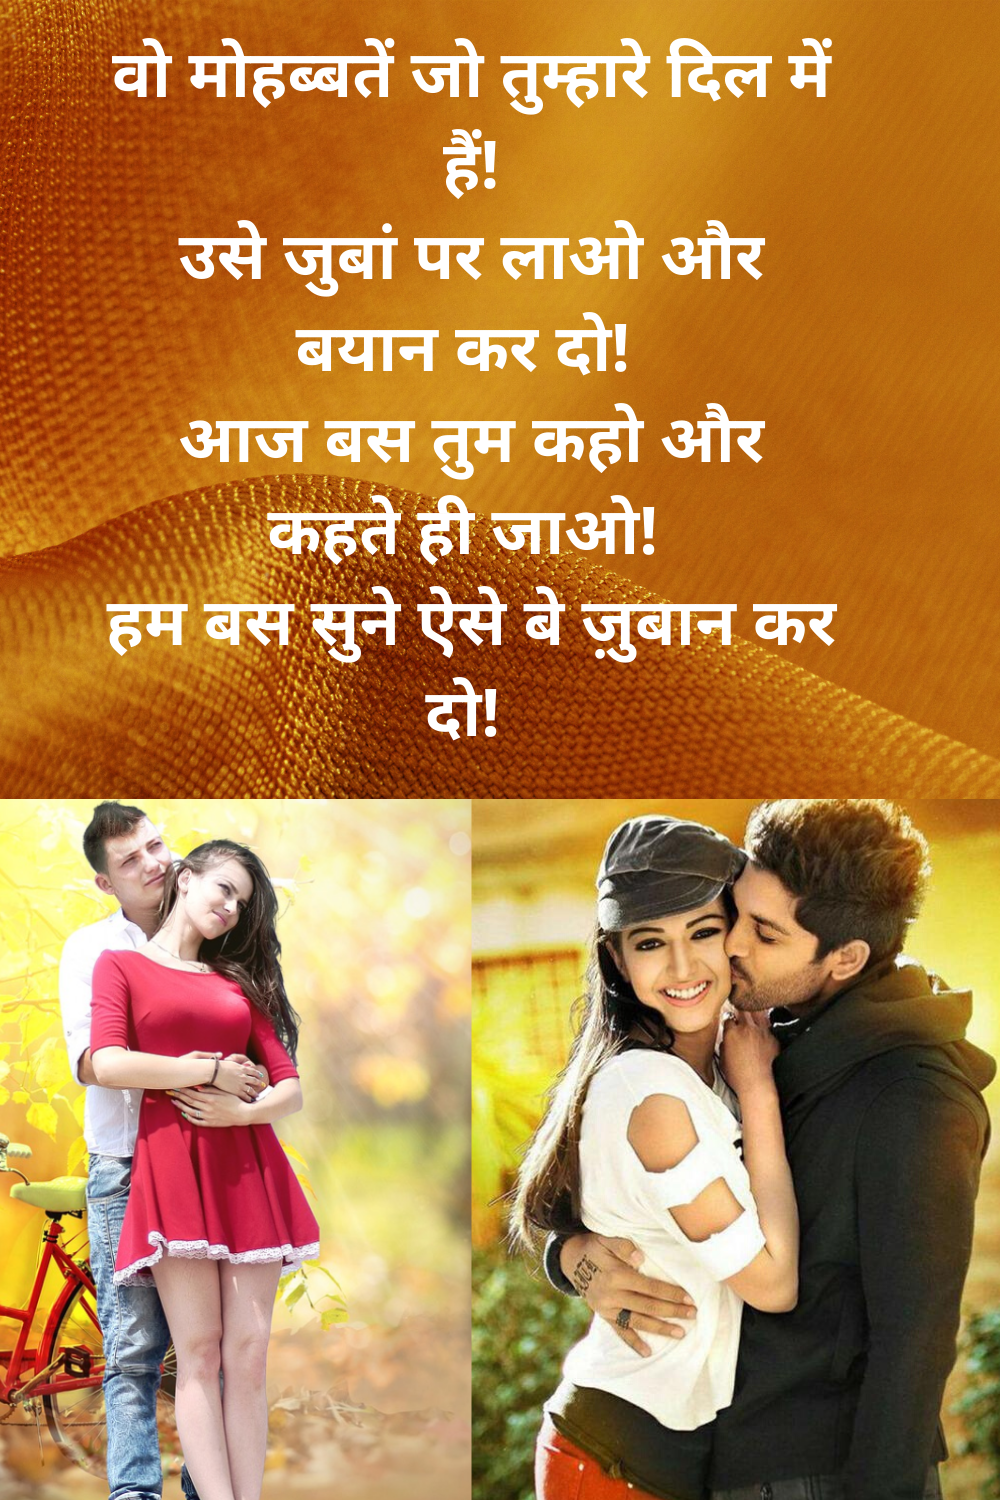 Love Status In Hindi Images Hd To Show Your Feelings Love Status Status Hindi Hindi Shayari Love